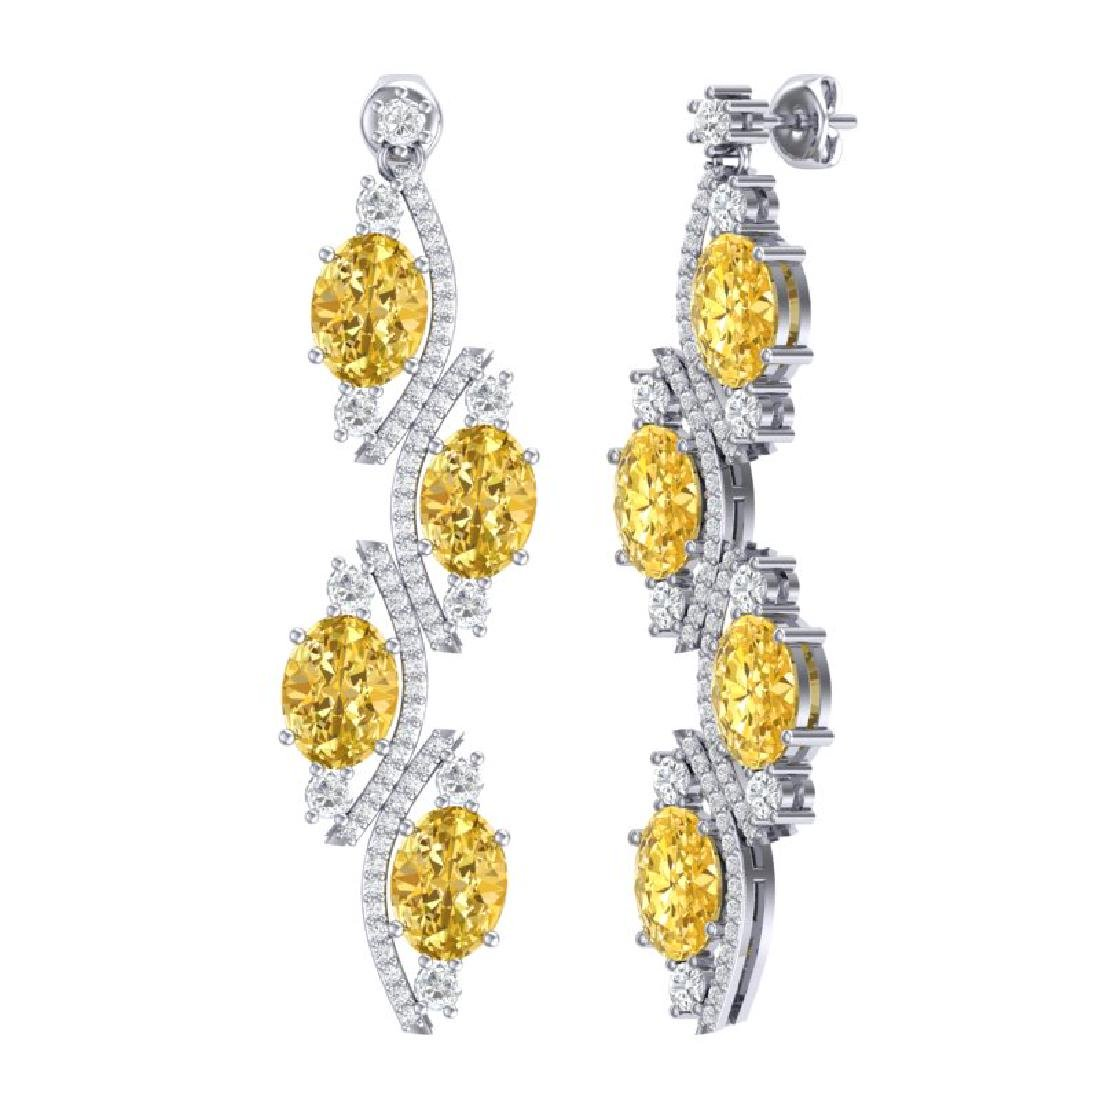 13.32 CTW Royalty Canary Citrine & VS Diamond Earrings - 3